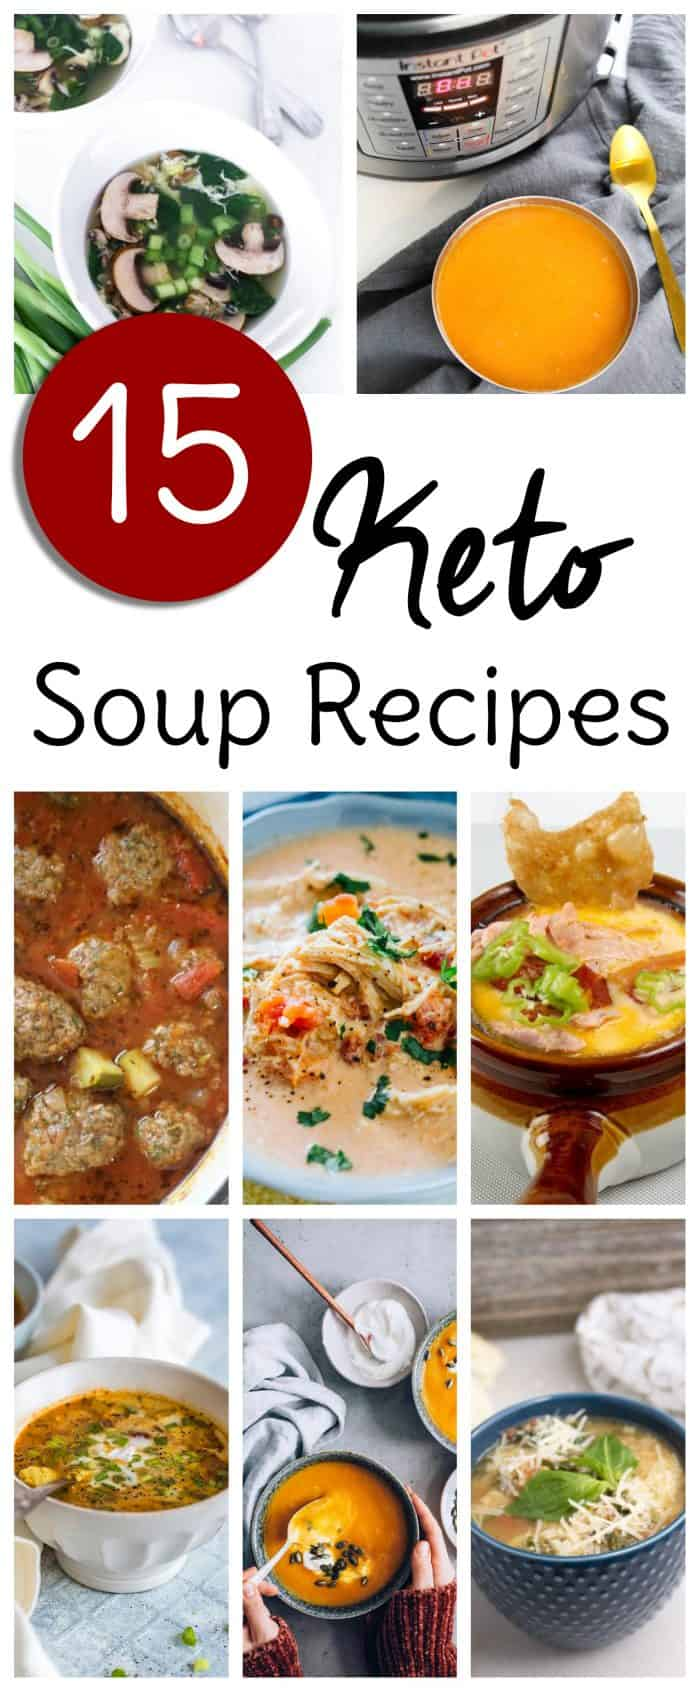 Keto soup recipes are a great way to feel cozy and warm this winter without getting your low carb way of eating off track. Many of these Keto soup recipes are designed for the Instant Pot, but even ones that aren't are very easy to adapt from a stove top or Crock Pot recipe once you're familiar with how pressure cooking works. #keto #soup #instantpot